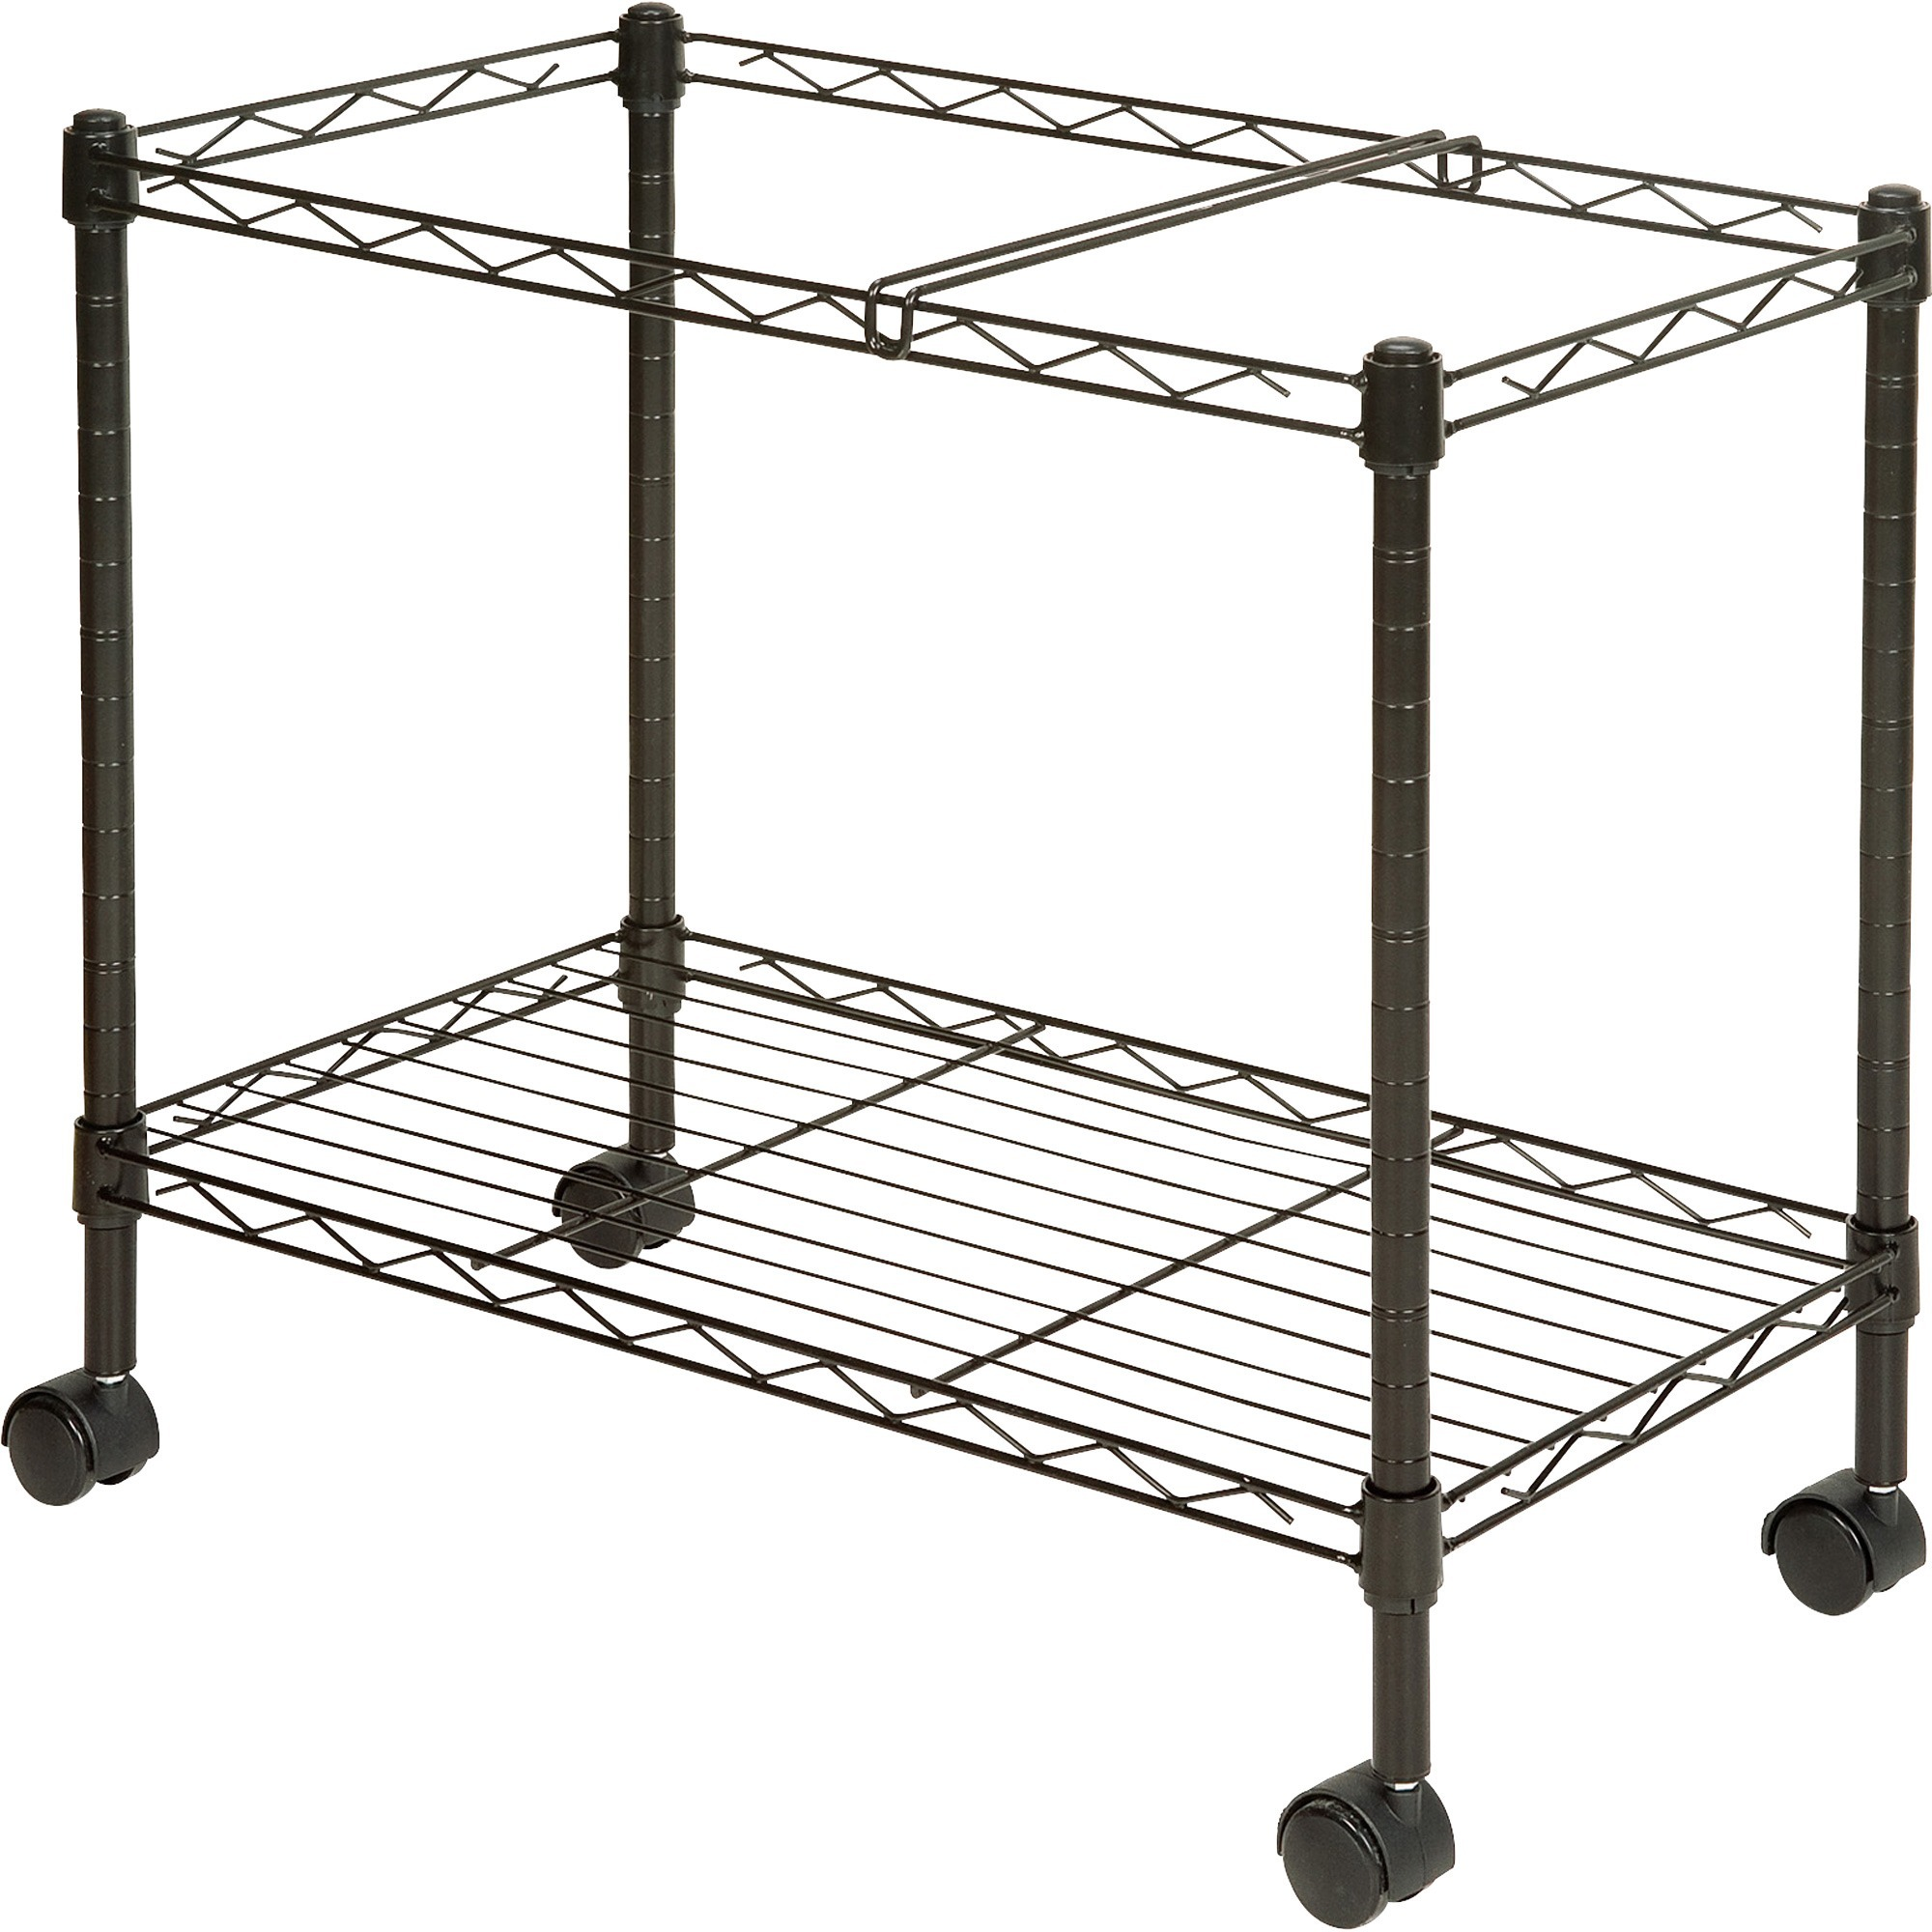 Lorell Mobile File Cart 4 Casters Steel 12 9 Width X 25 8 Depth 20 5 Height Black